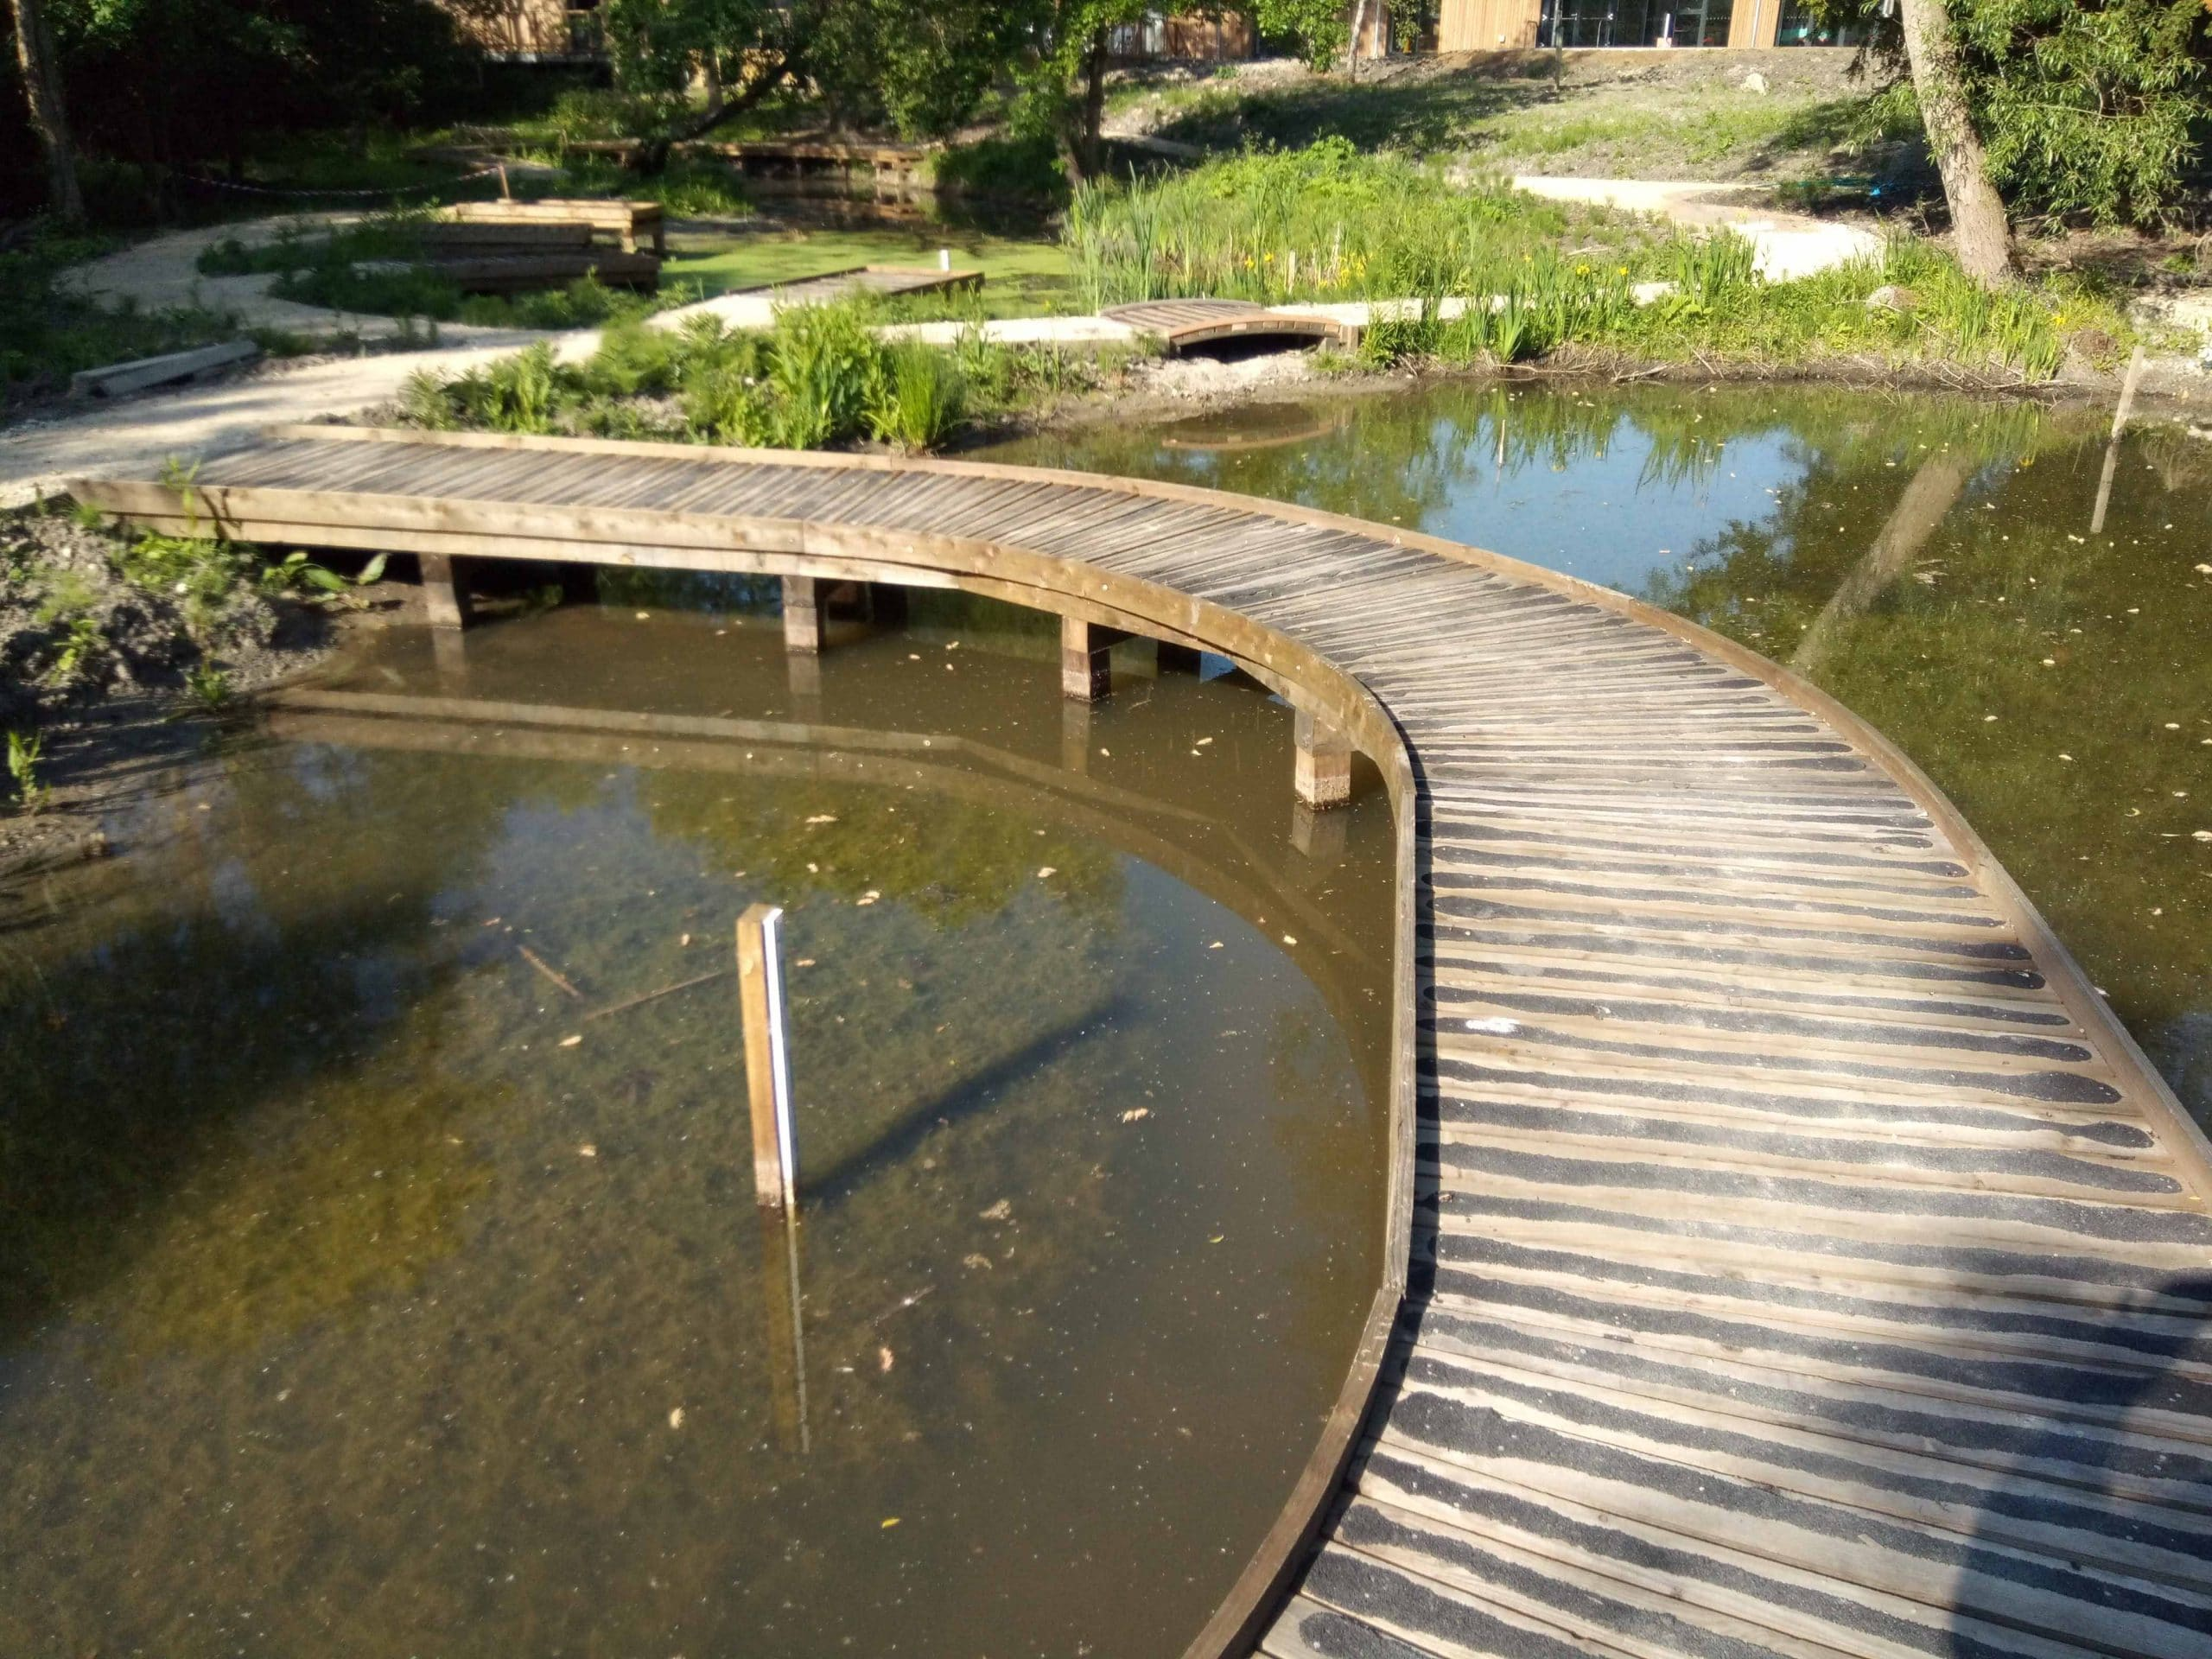 curved wooden walkway over a pond